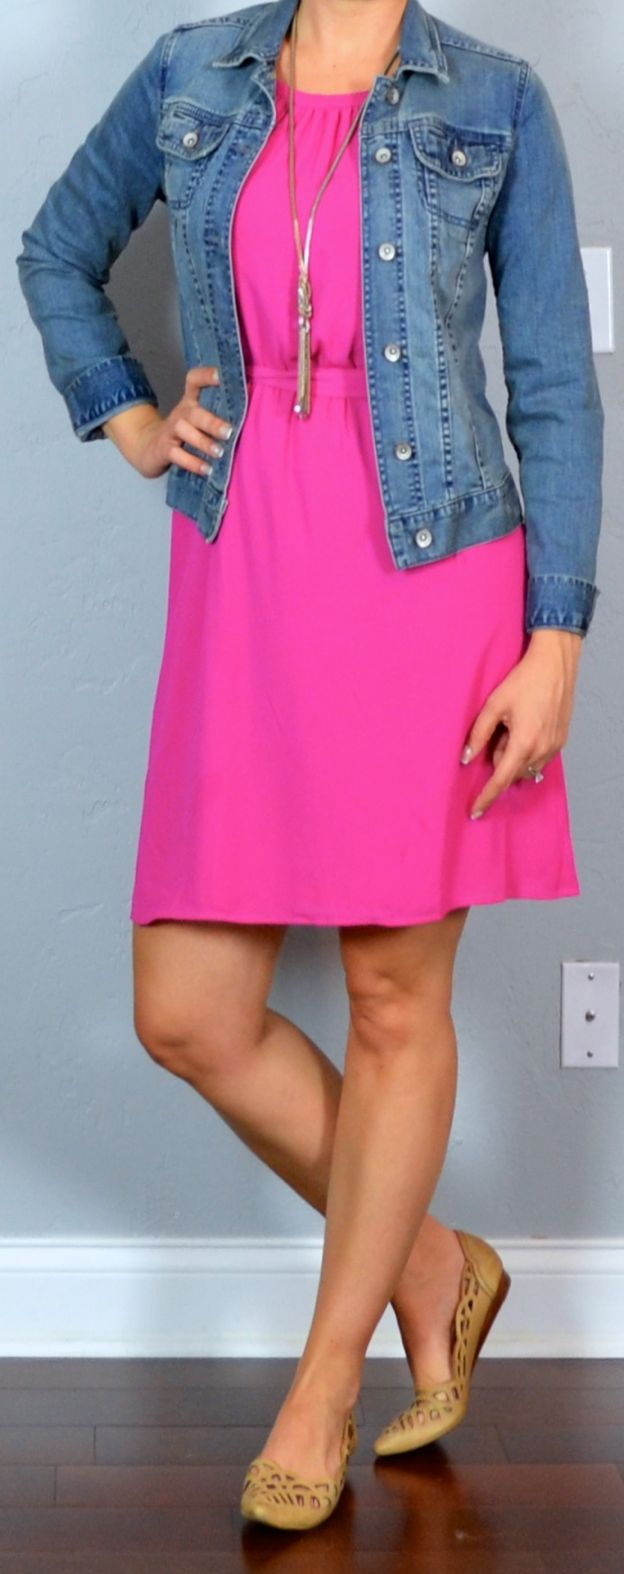 Outfit Posts: outfit post: hot pink dress, jean jacket, nude cutout flats